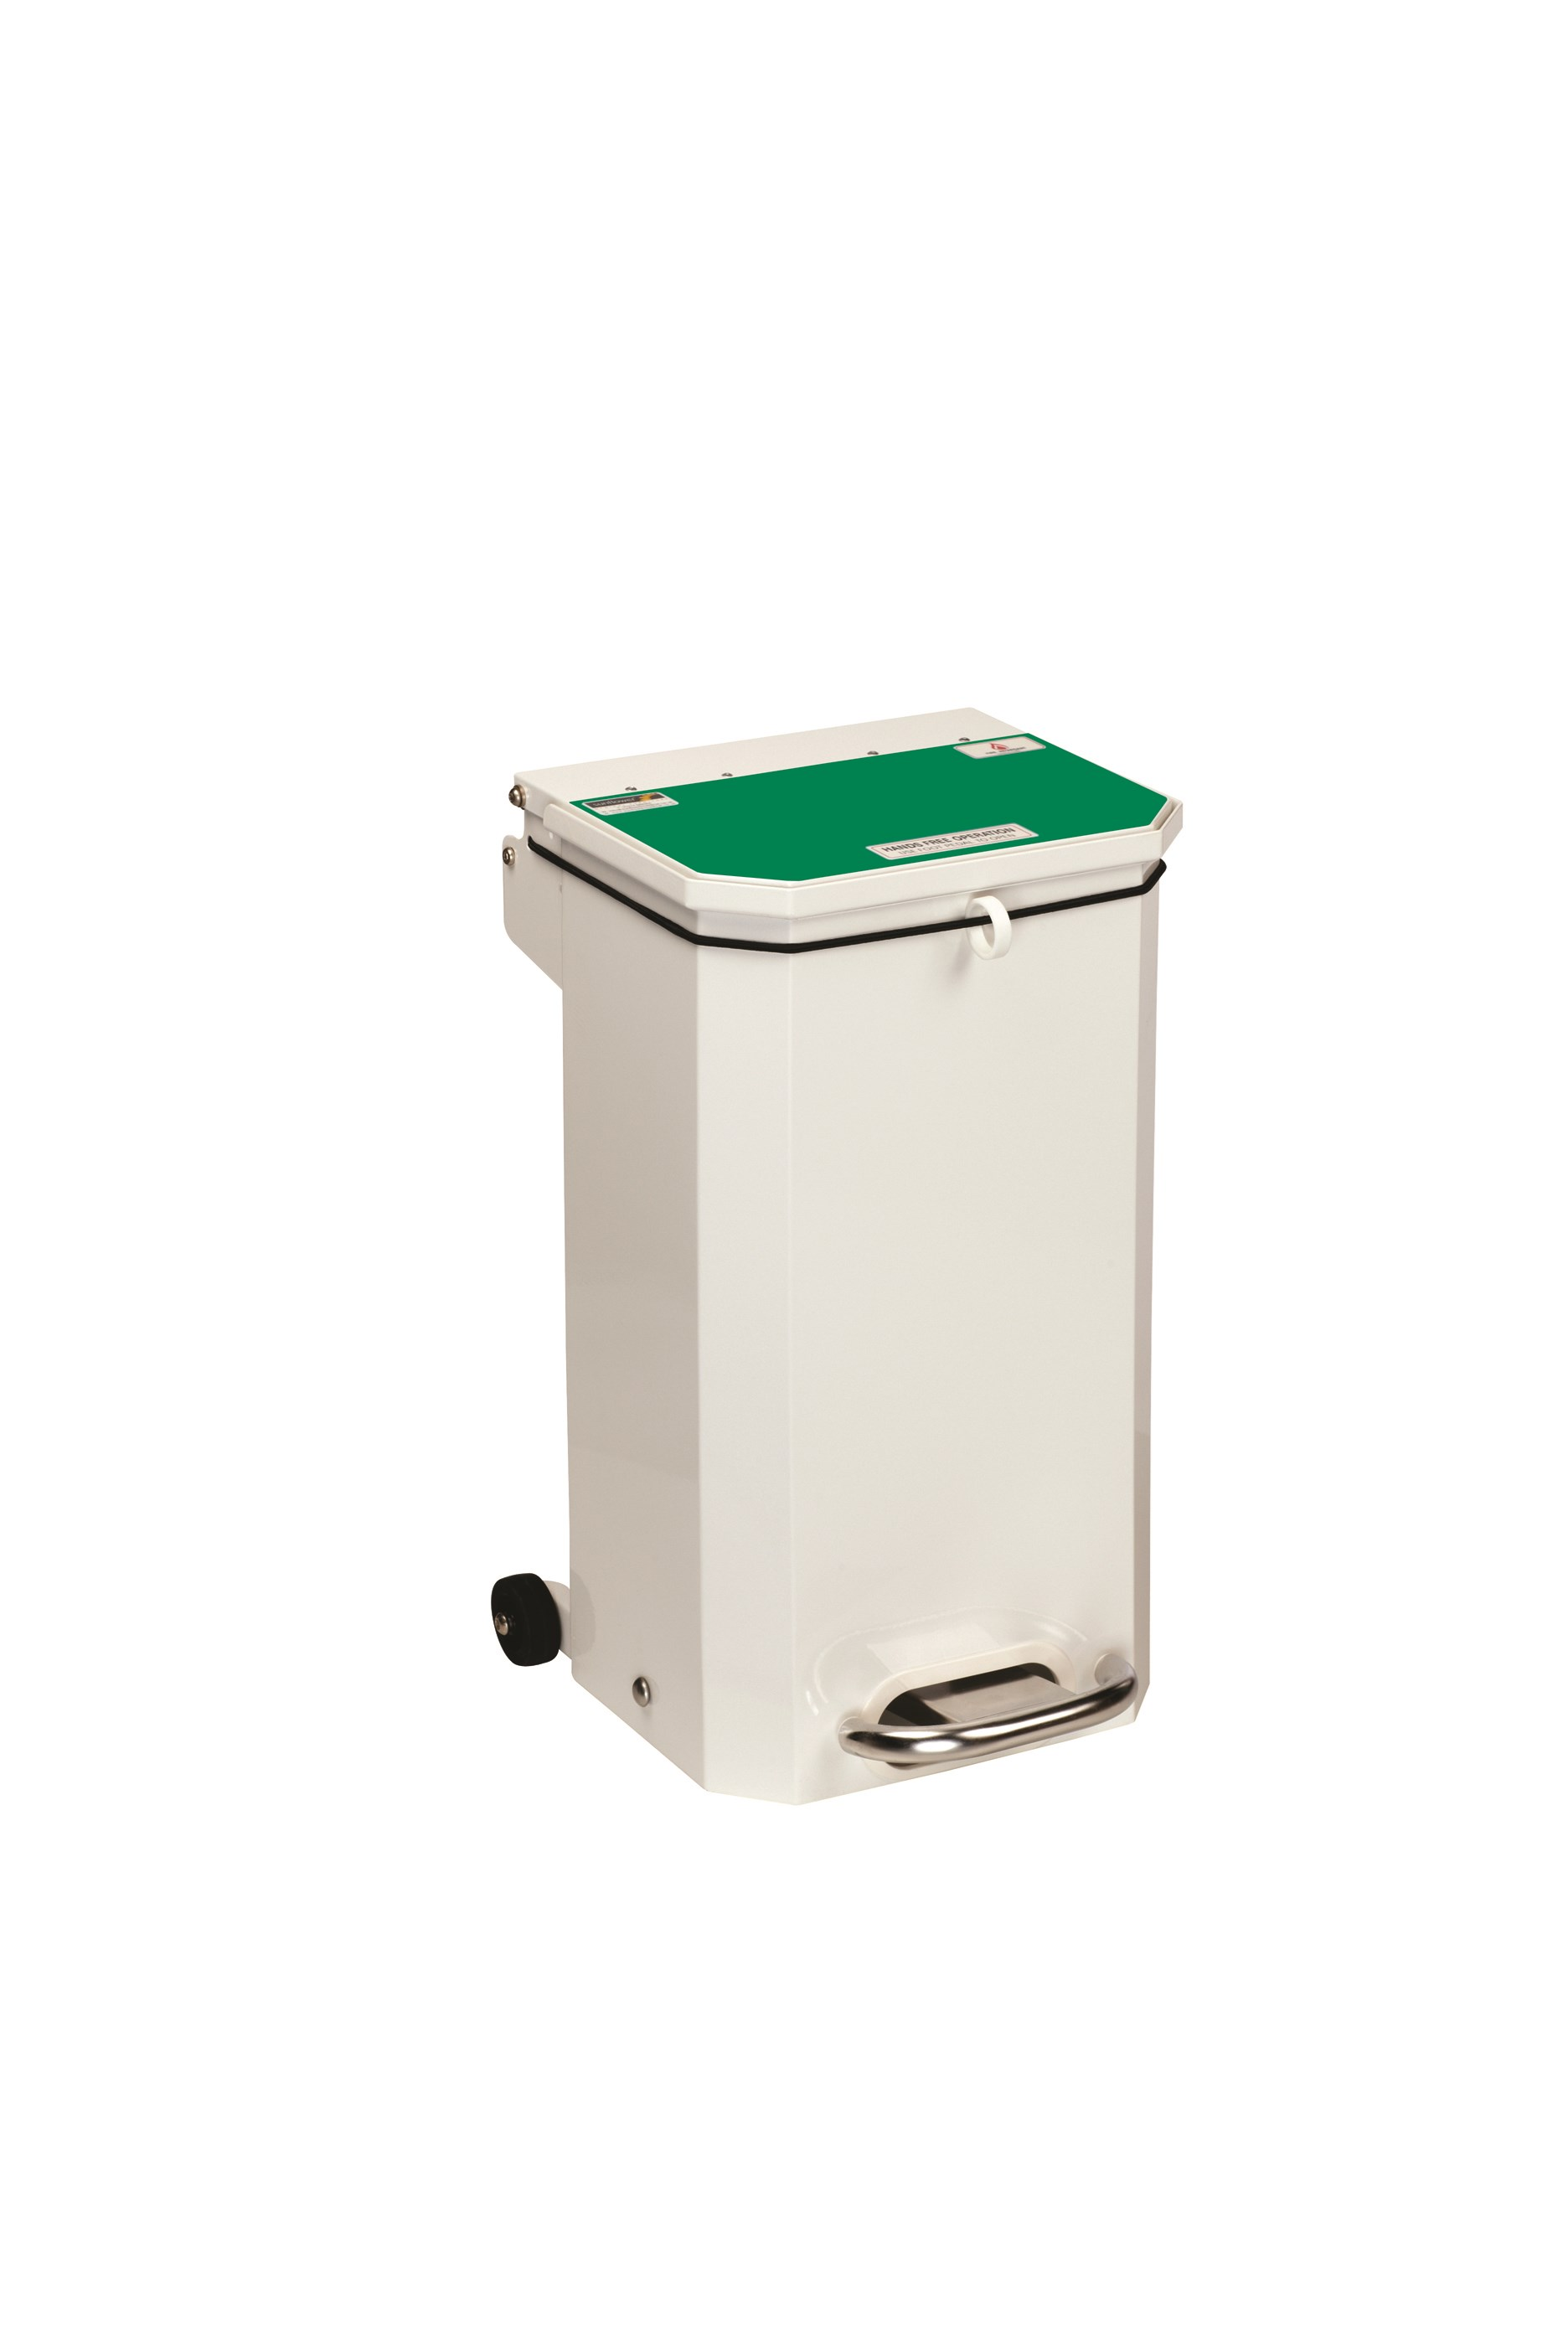 BIN PEDAL 20 LTR WITH GREEN LID USER DEFINED